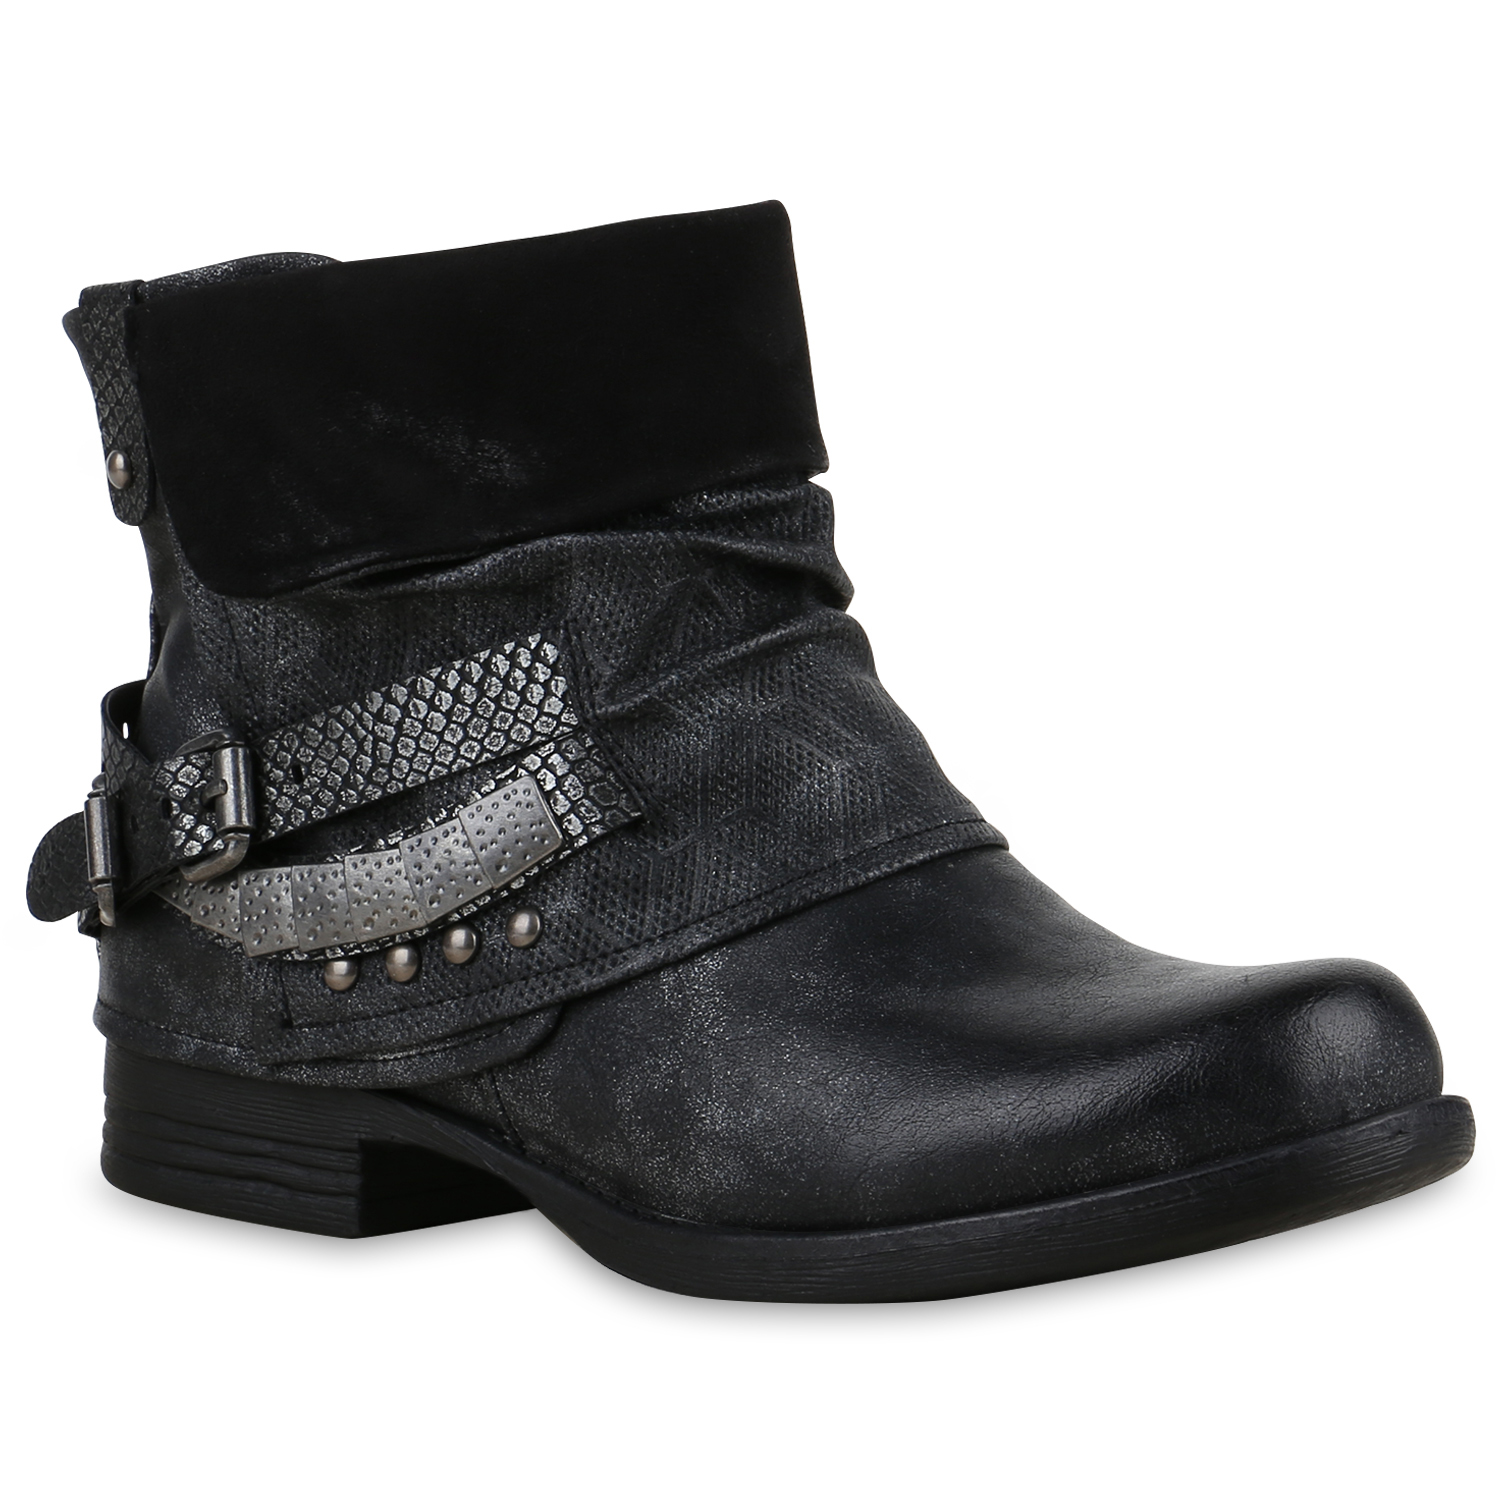 damen biker boots used look stiefeletten nieten schuhe 814504 ebay. Black Bedroom Furniture Sets. Home Design Ideas